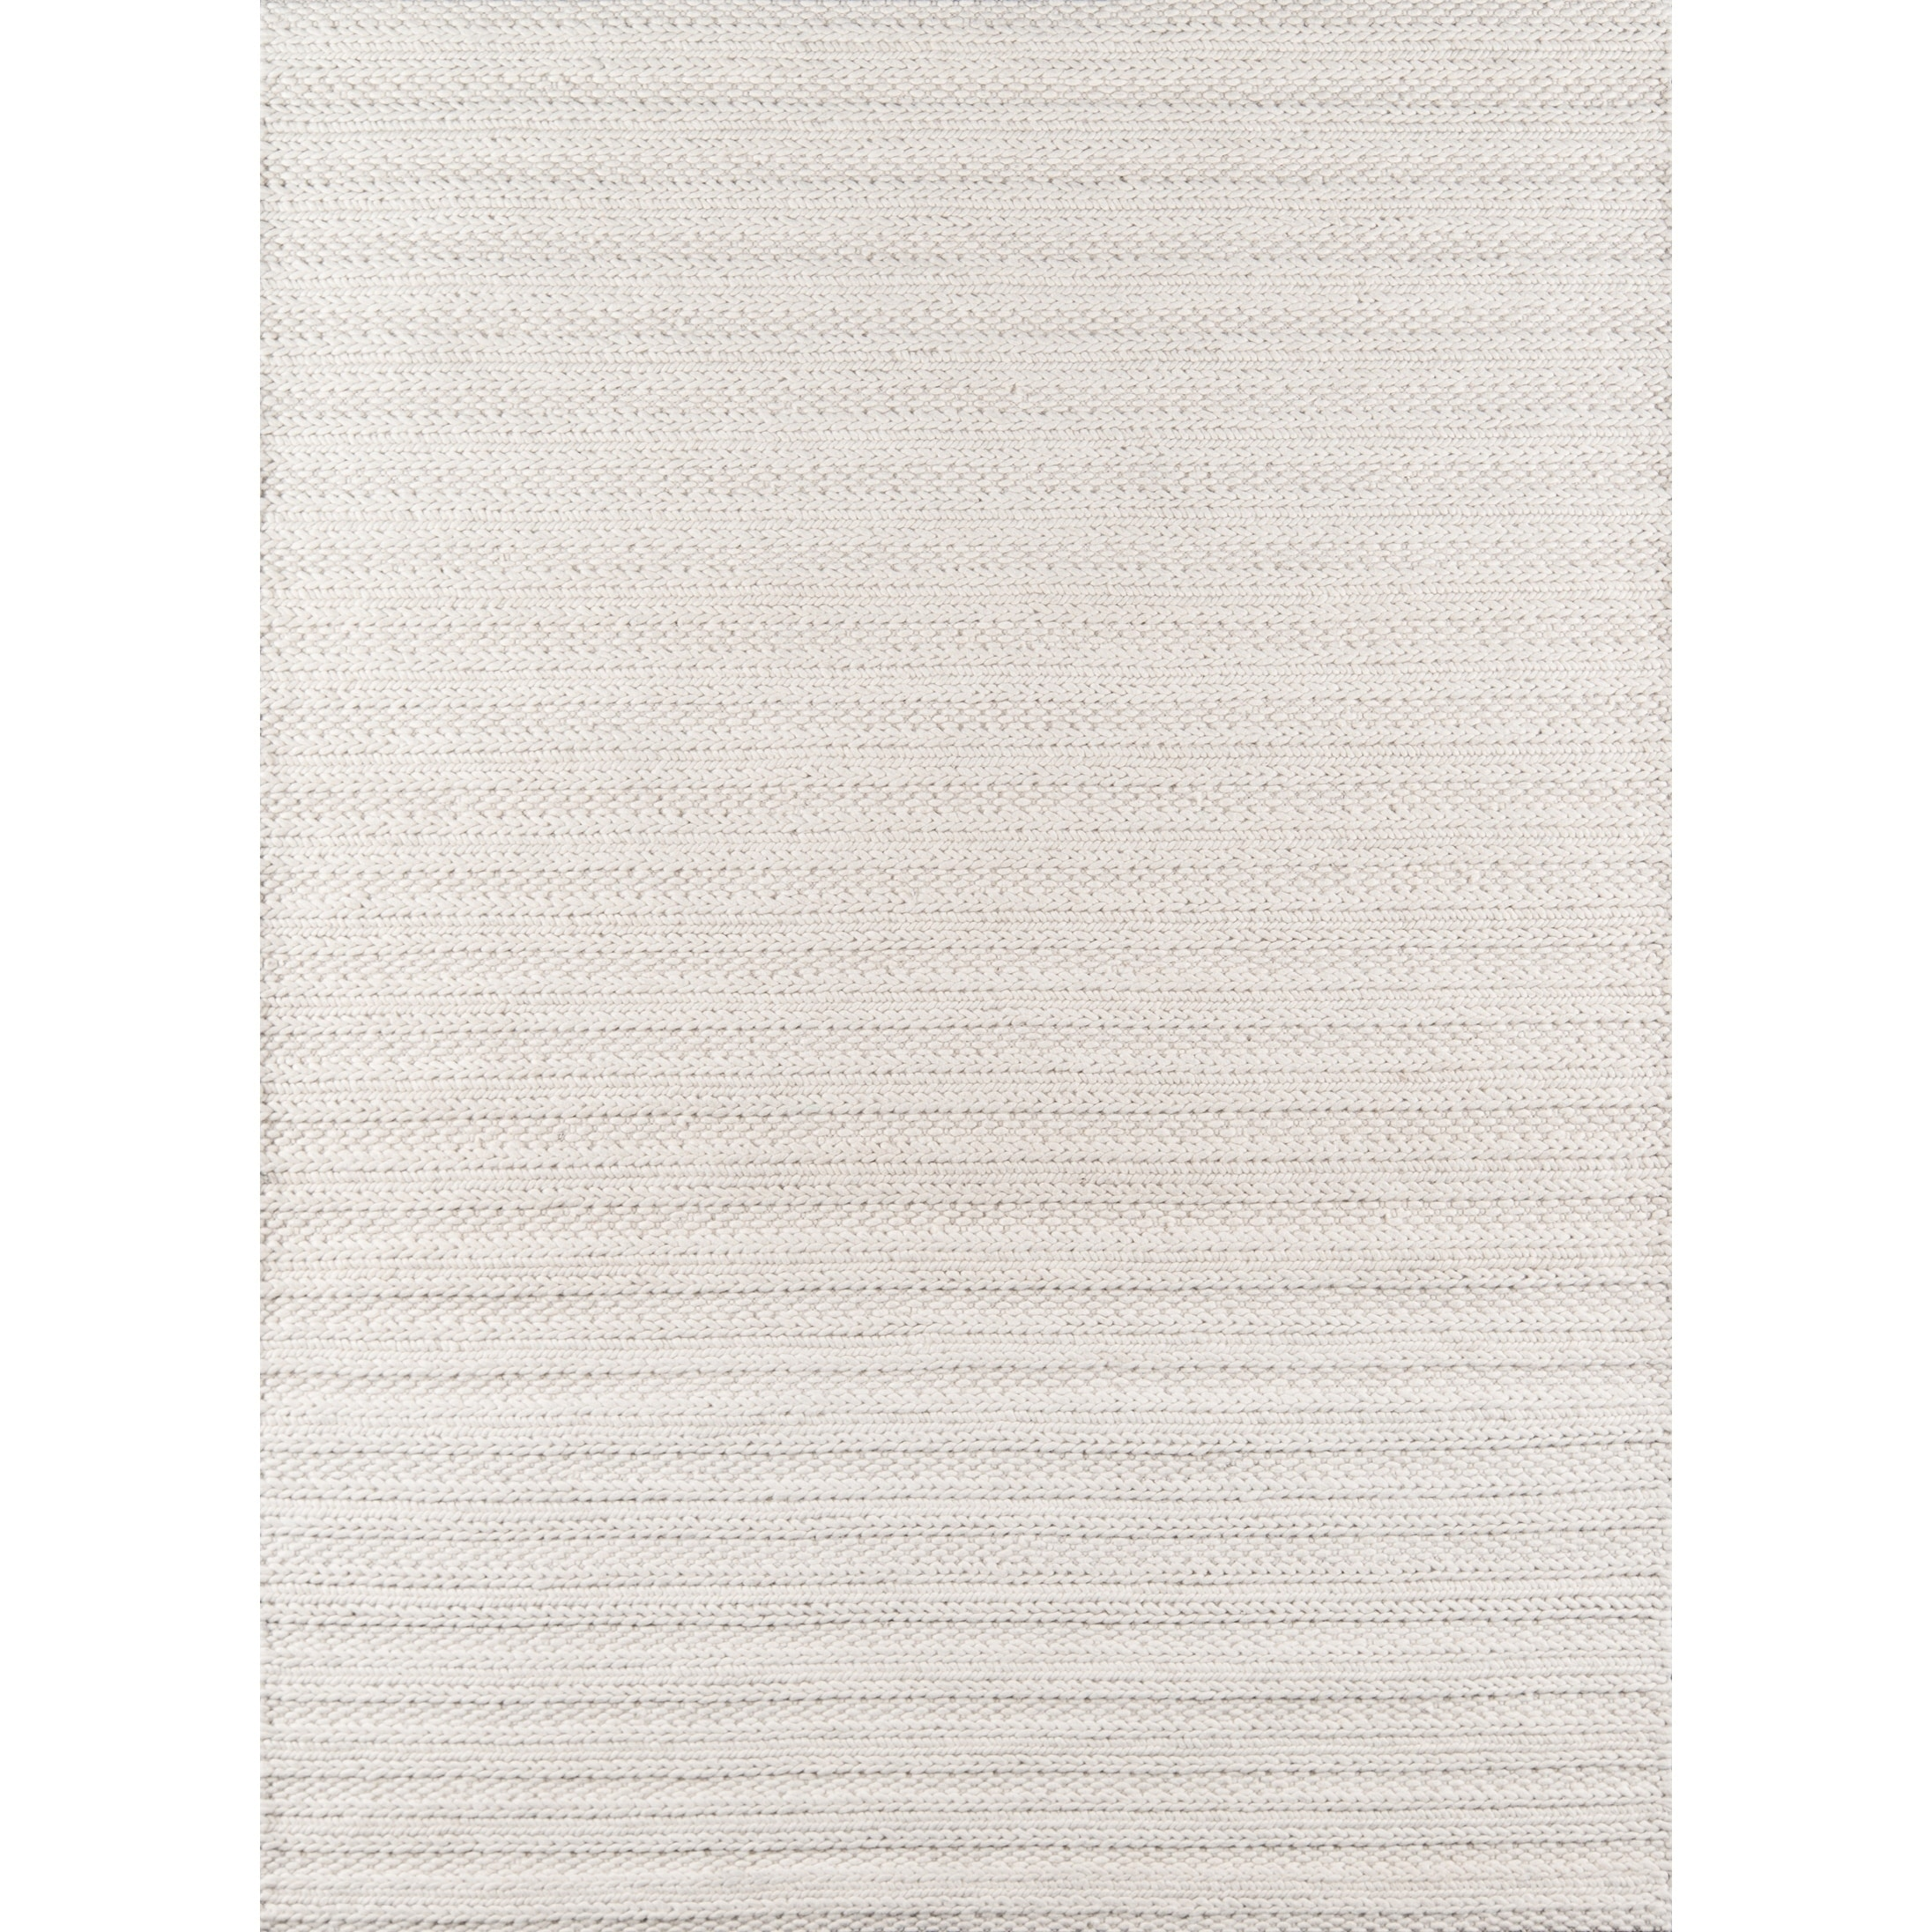 Momeni Andes Hand Woven Wool And Viscose Contemporary Striped Area Rug On Sale Overstock 22077351